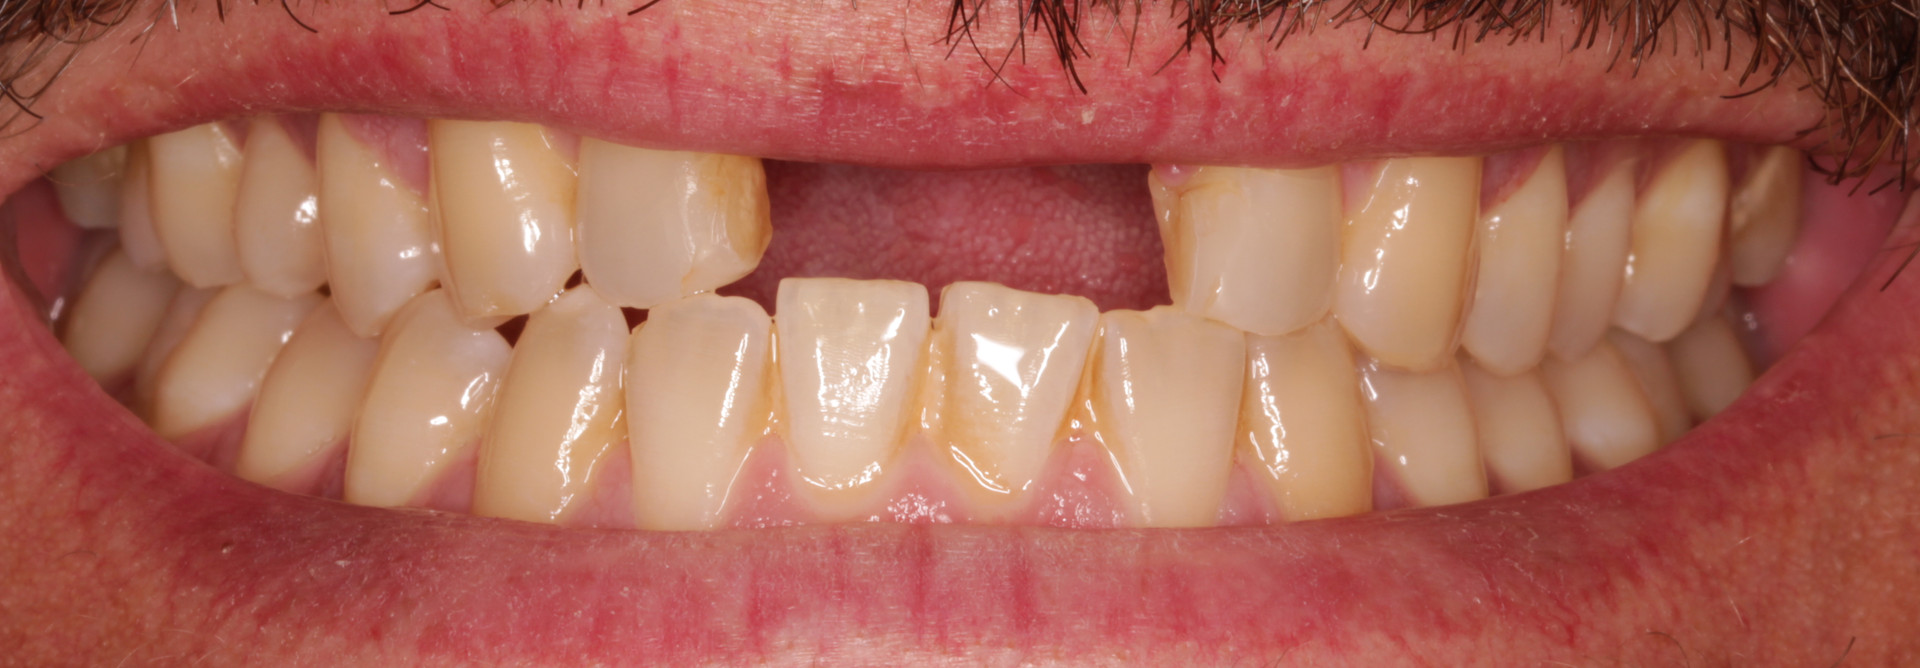 Upper Central Incisors